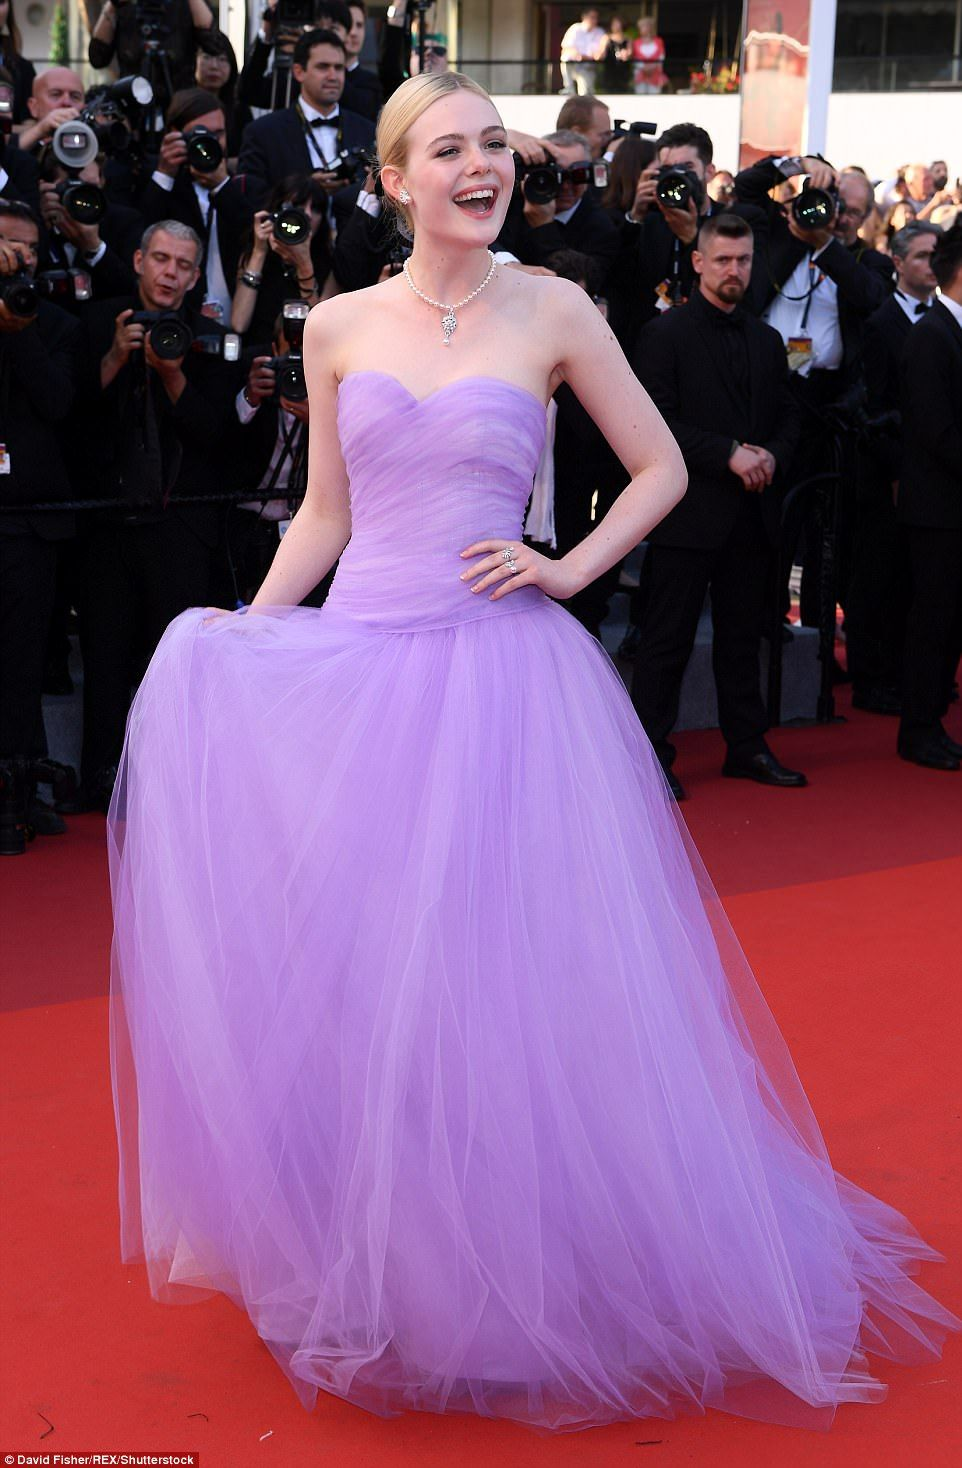 Kirsten Dunst and Elle Fanning wear matching gowns in Cannes ...